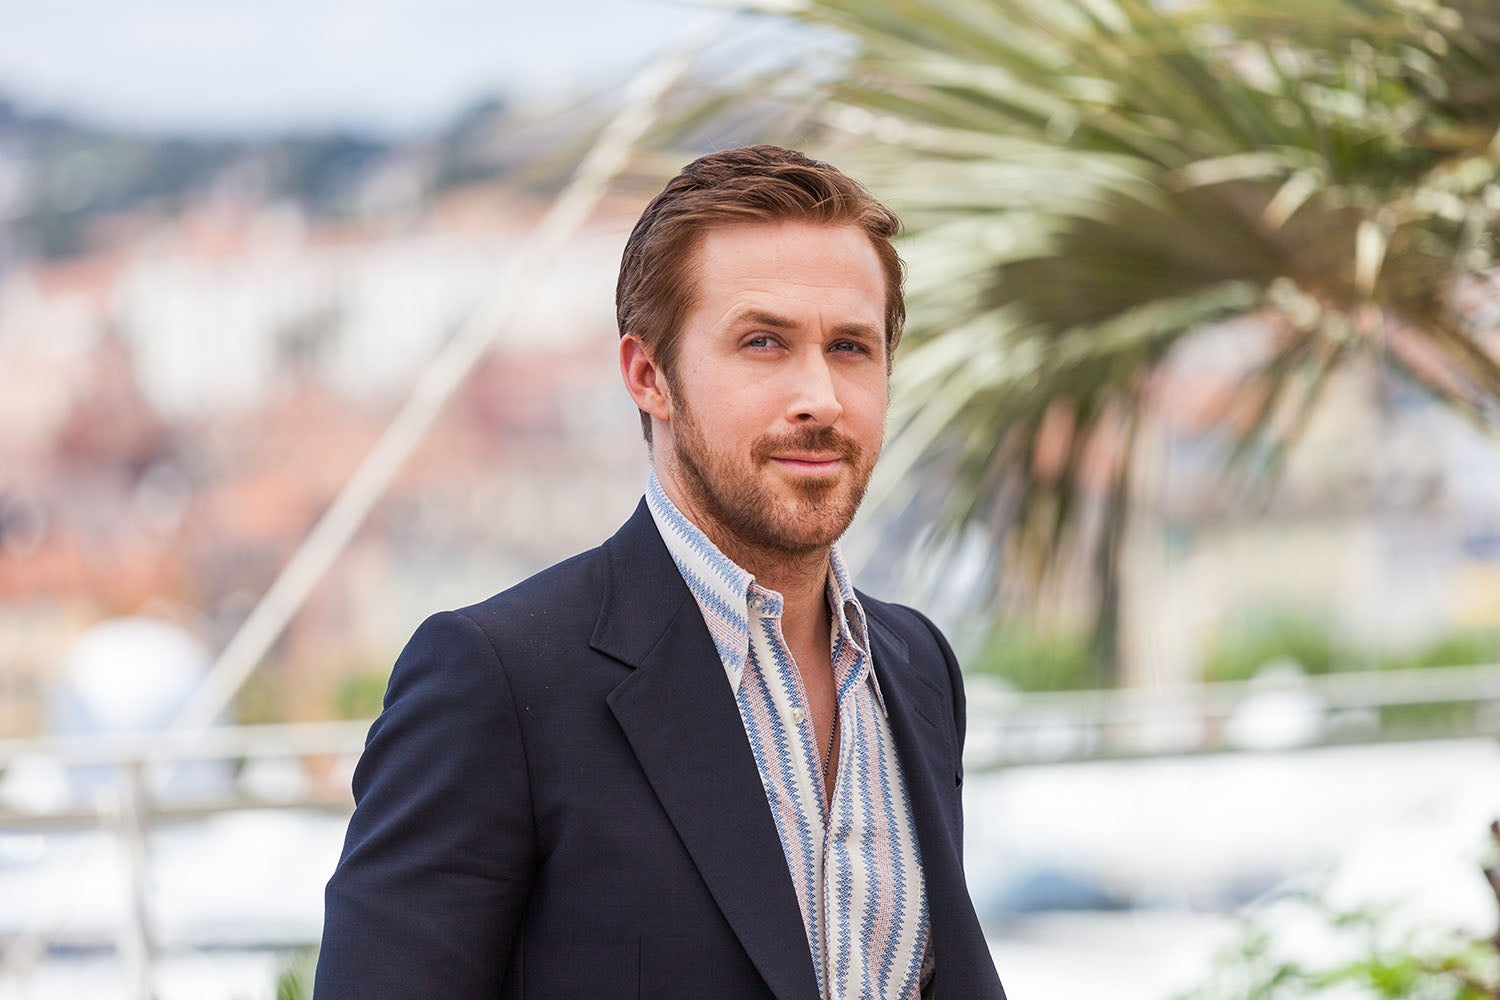 078c5e5fd4 Ryan Gosling - How To Get His Everyday Look - SWAGGER Magazine